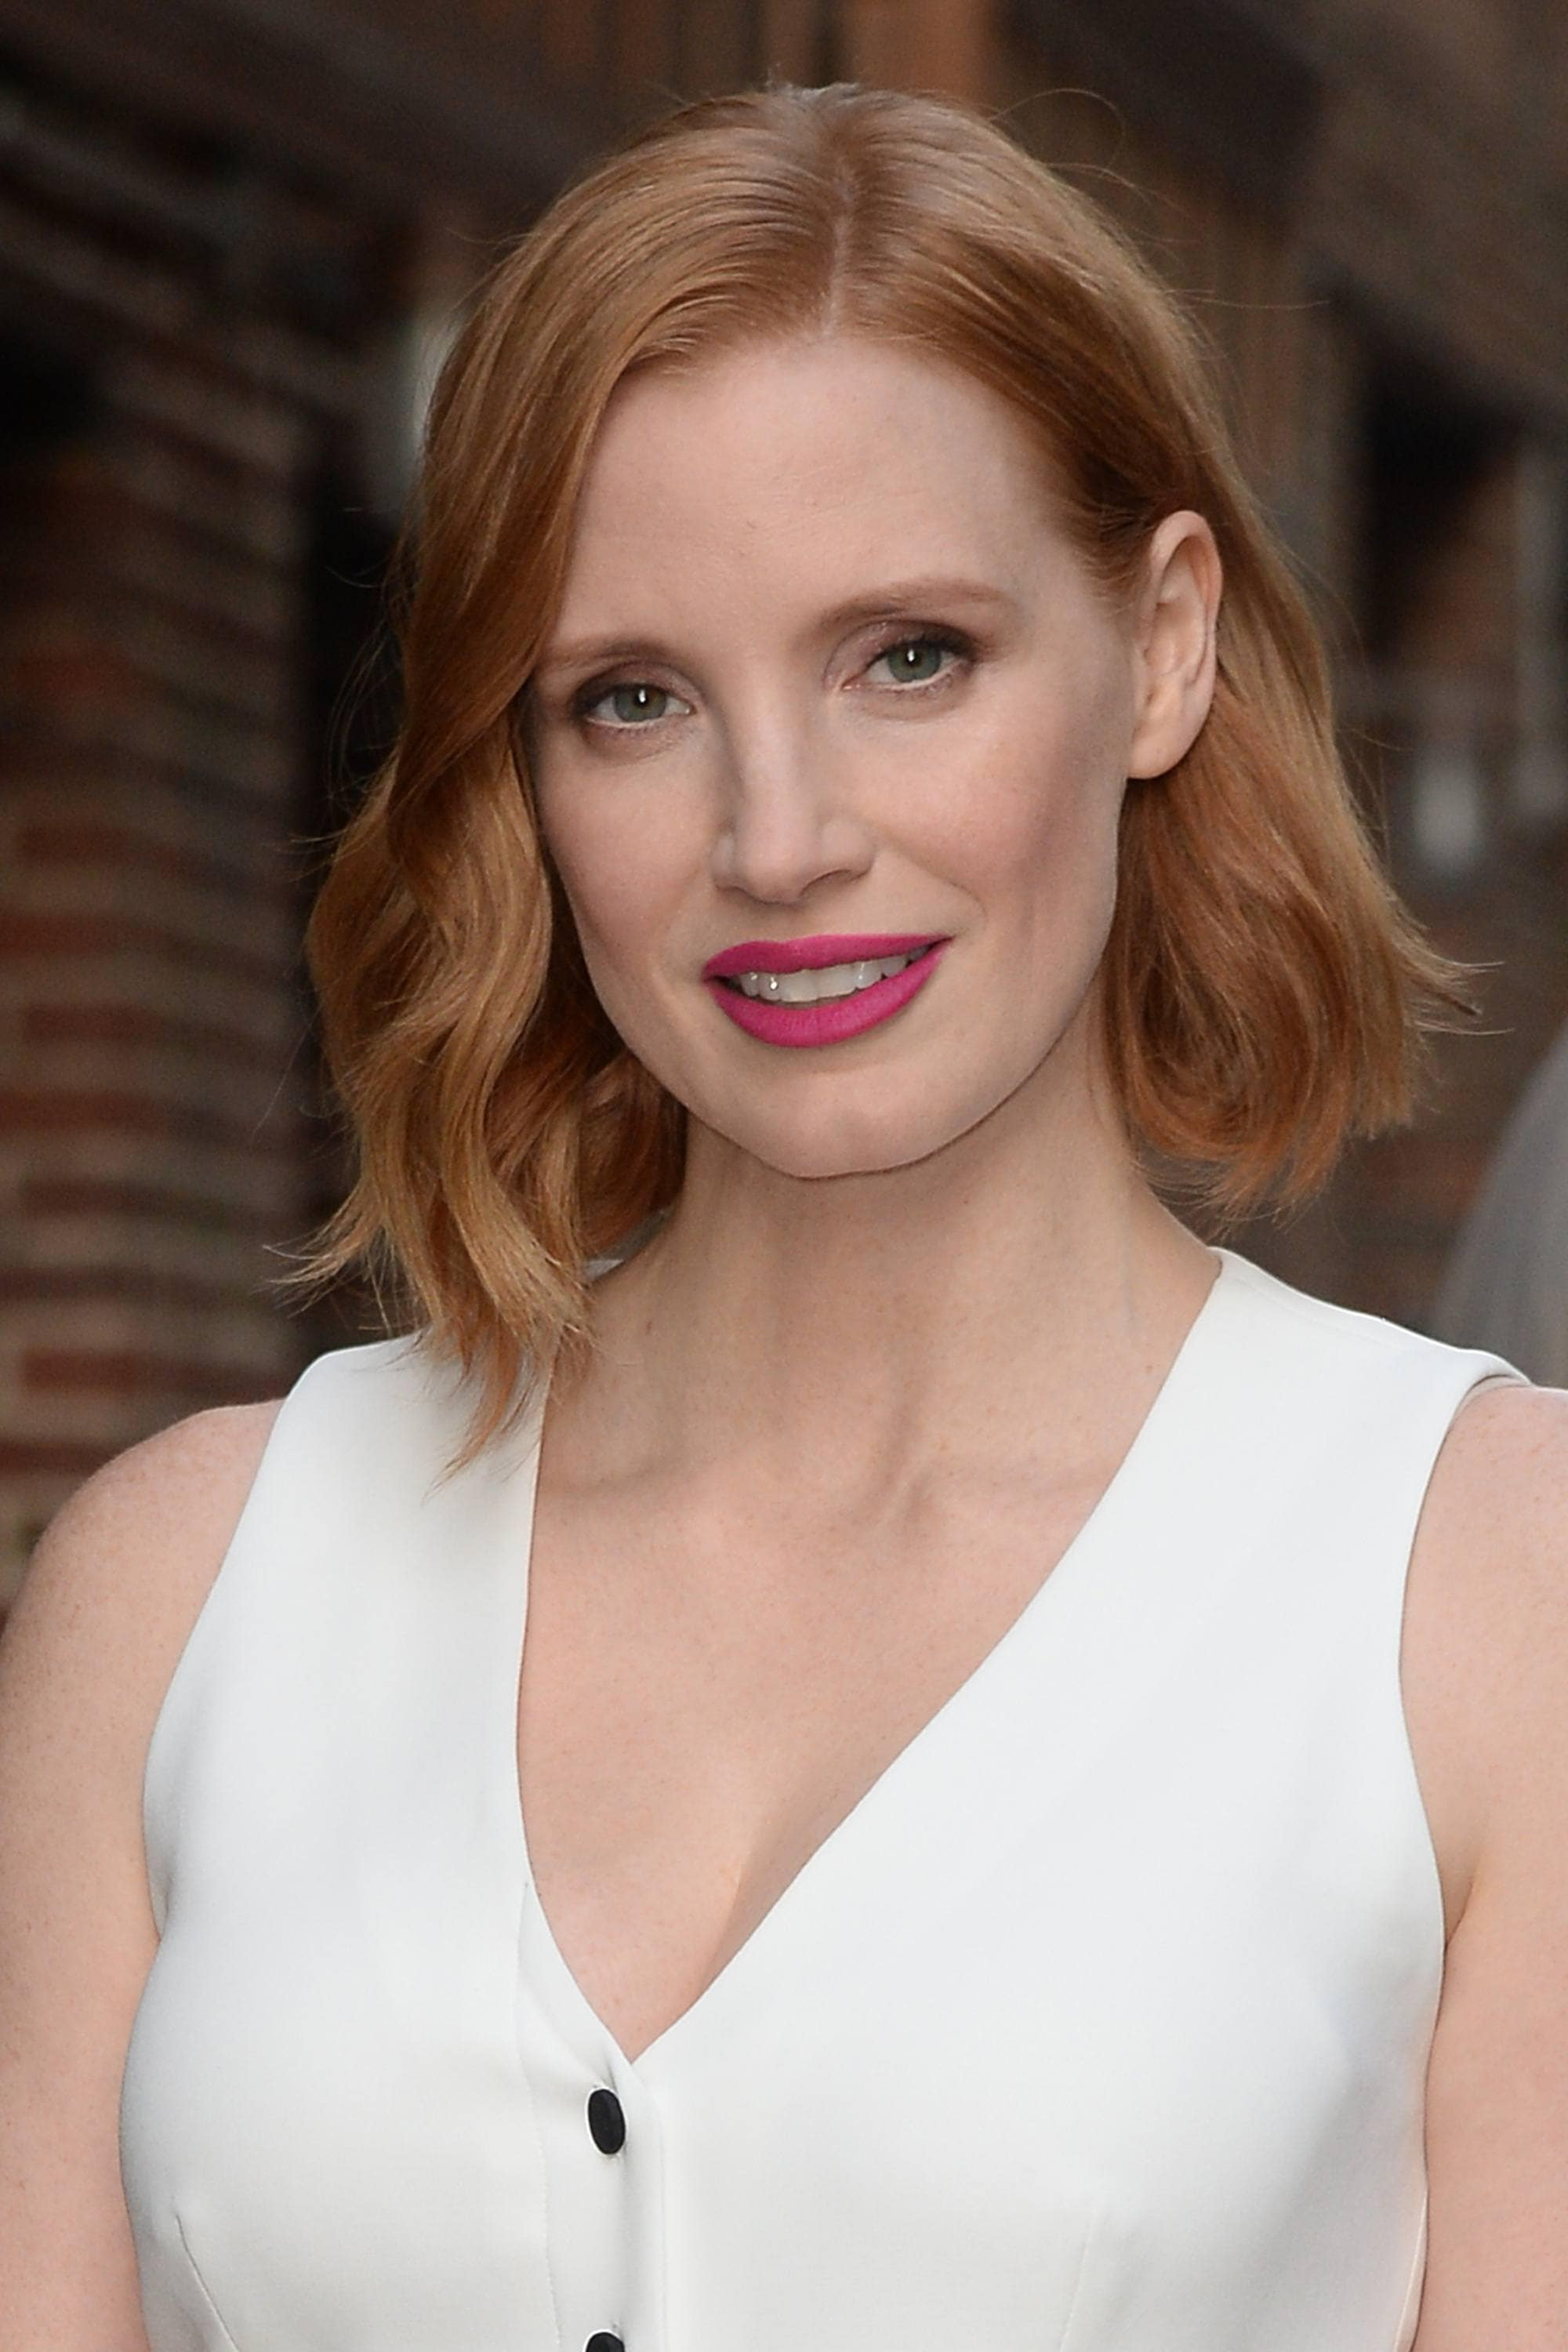 hairstyles for fine curly hair: jessica chastain with her red hair in an Asymmetric bob style with long side longer than the other